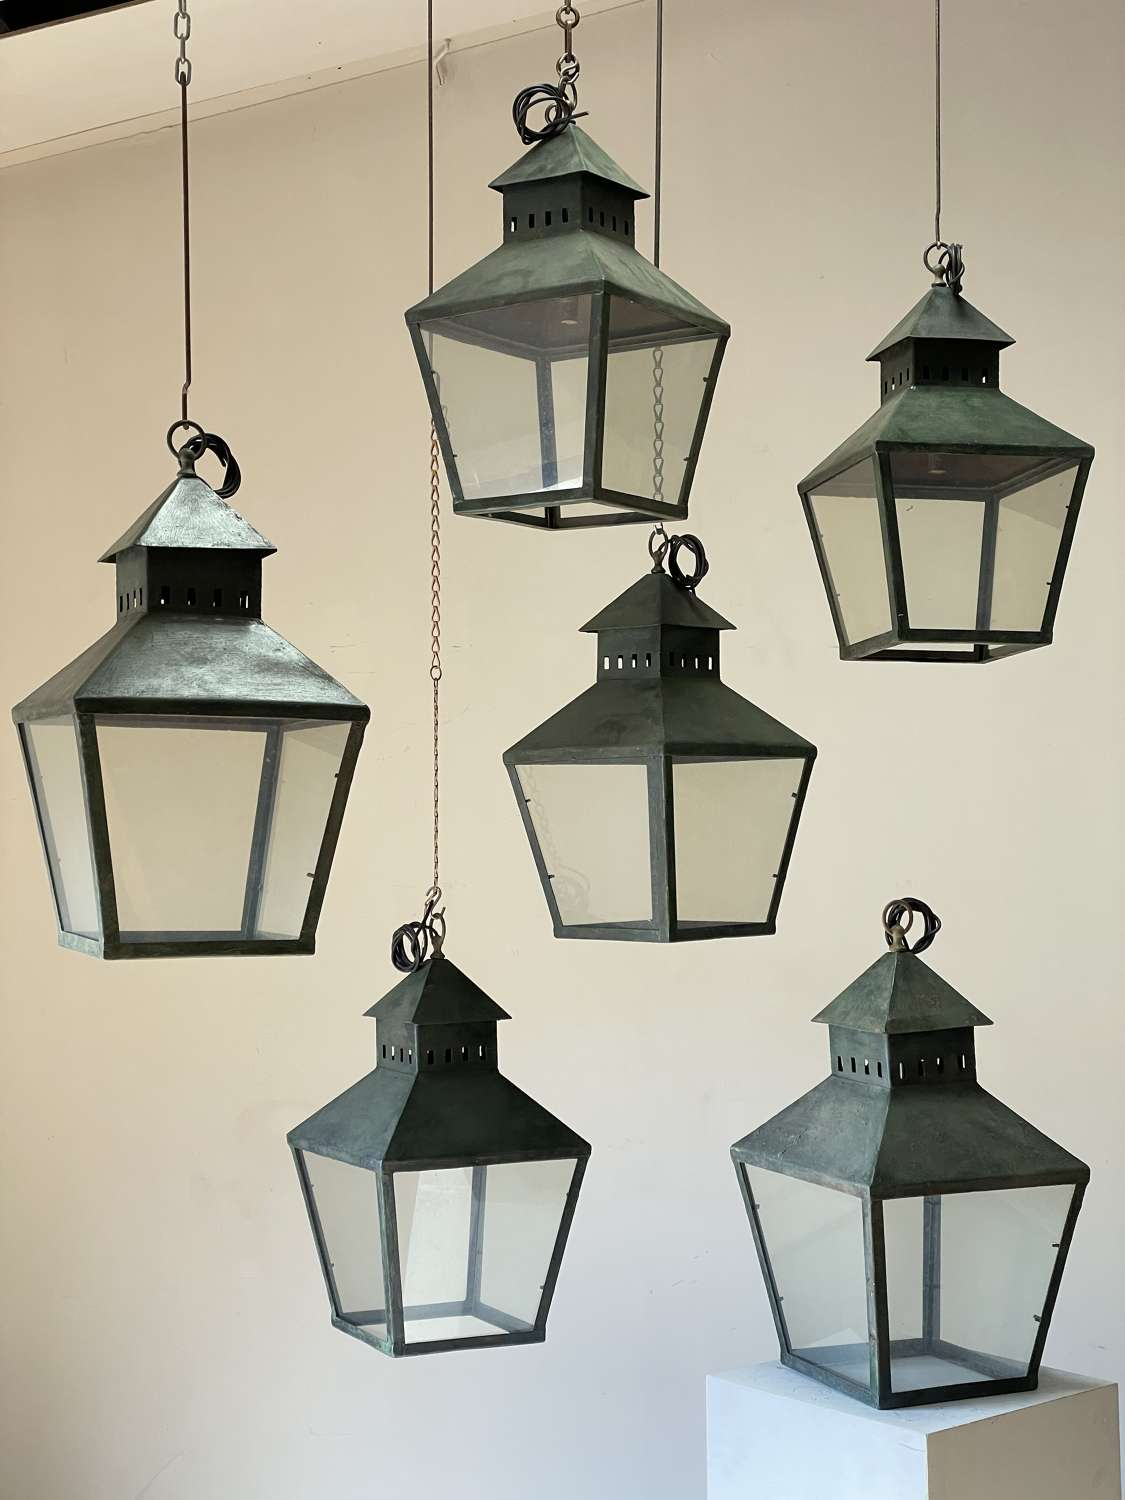 C1900 Painted Tole French Lanterns - Sold Separately